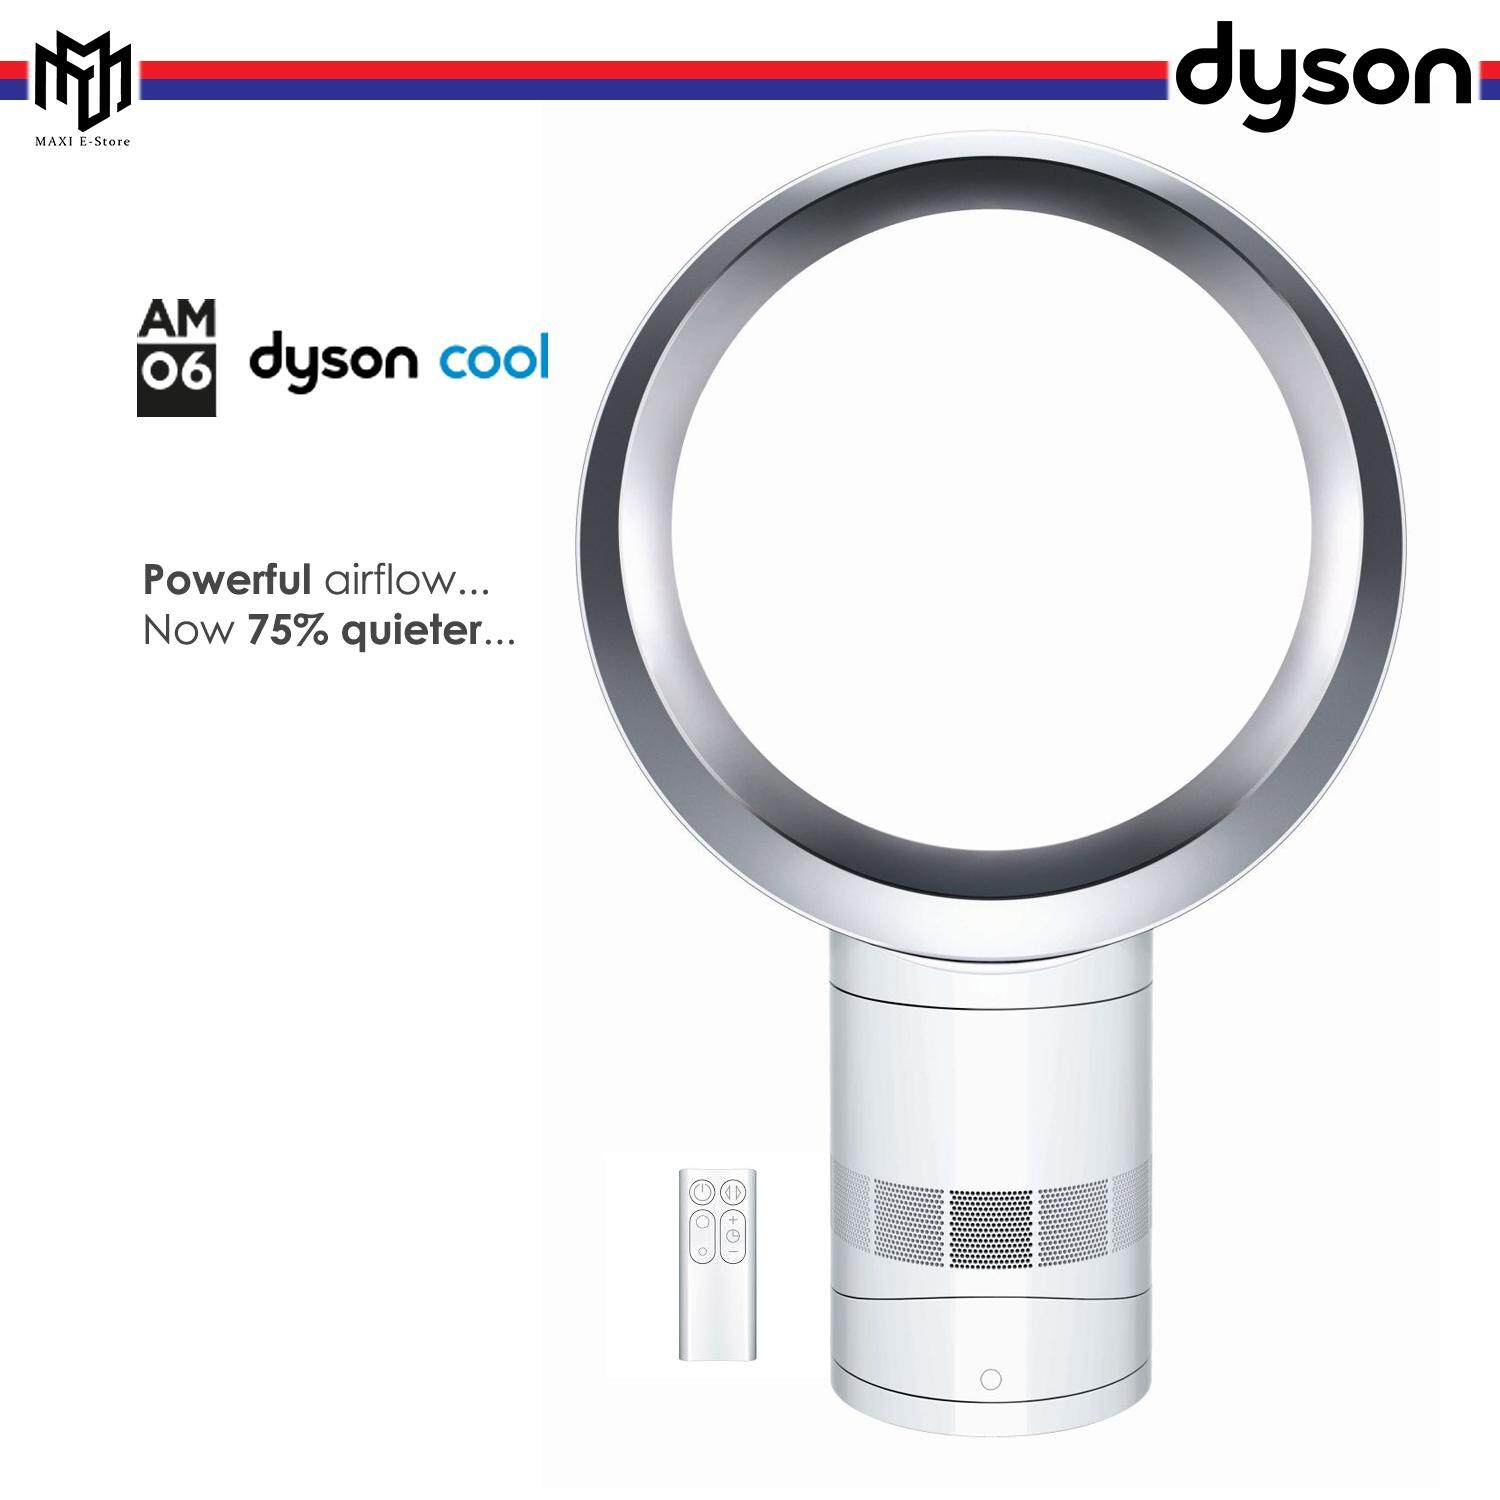 home qdylfxazjg reviews pedestal dyson review cool fan smart desk